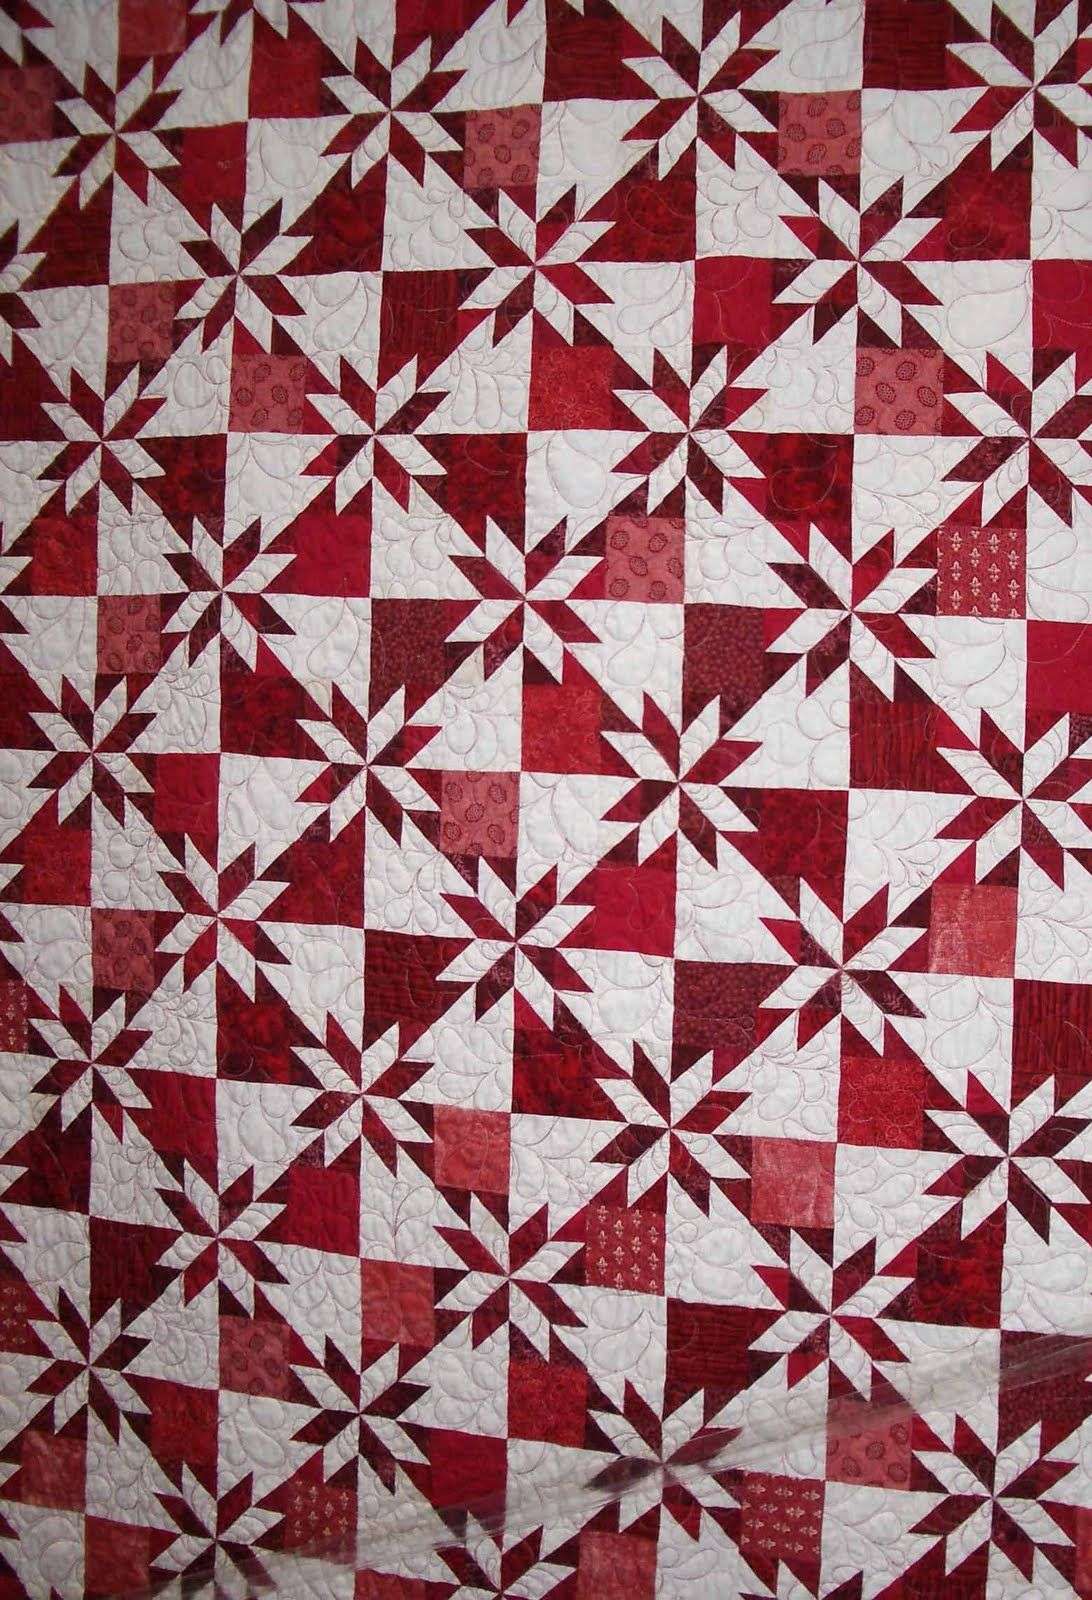 love red and white! this is my favorite (one of them anyway) quilt pattern. it works up great in all combinations including scrappy